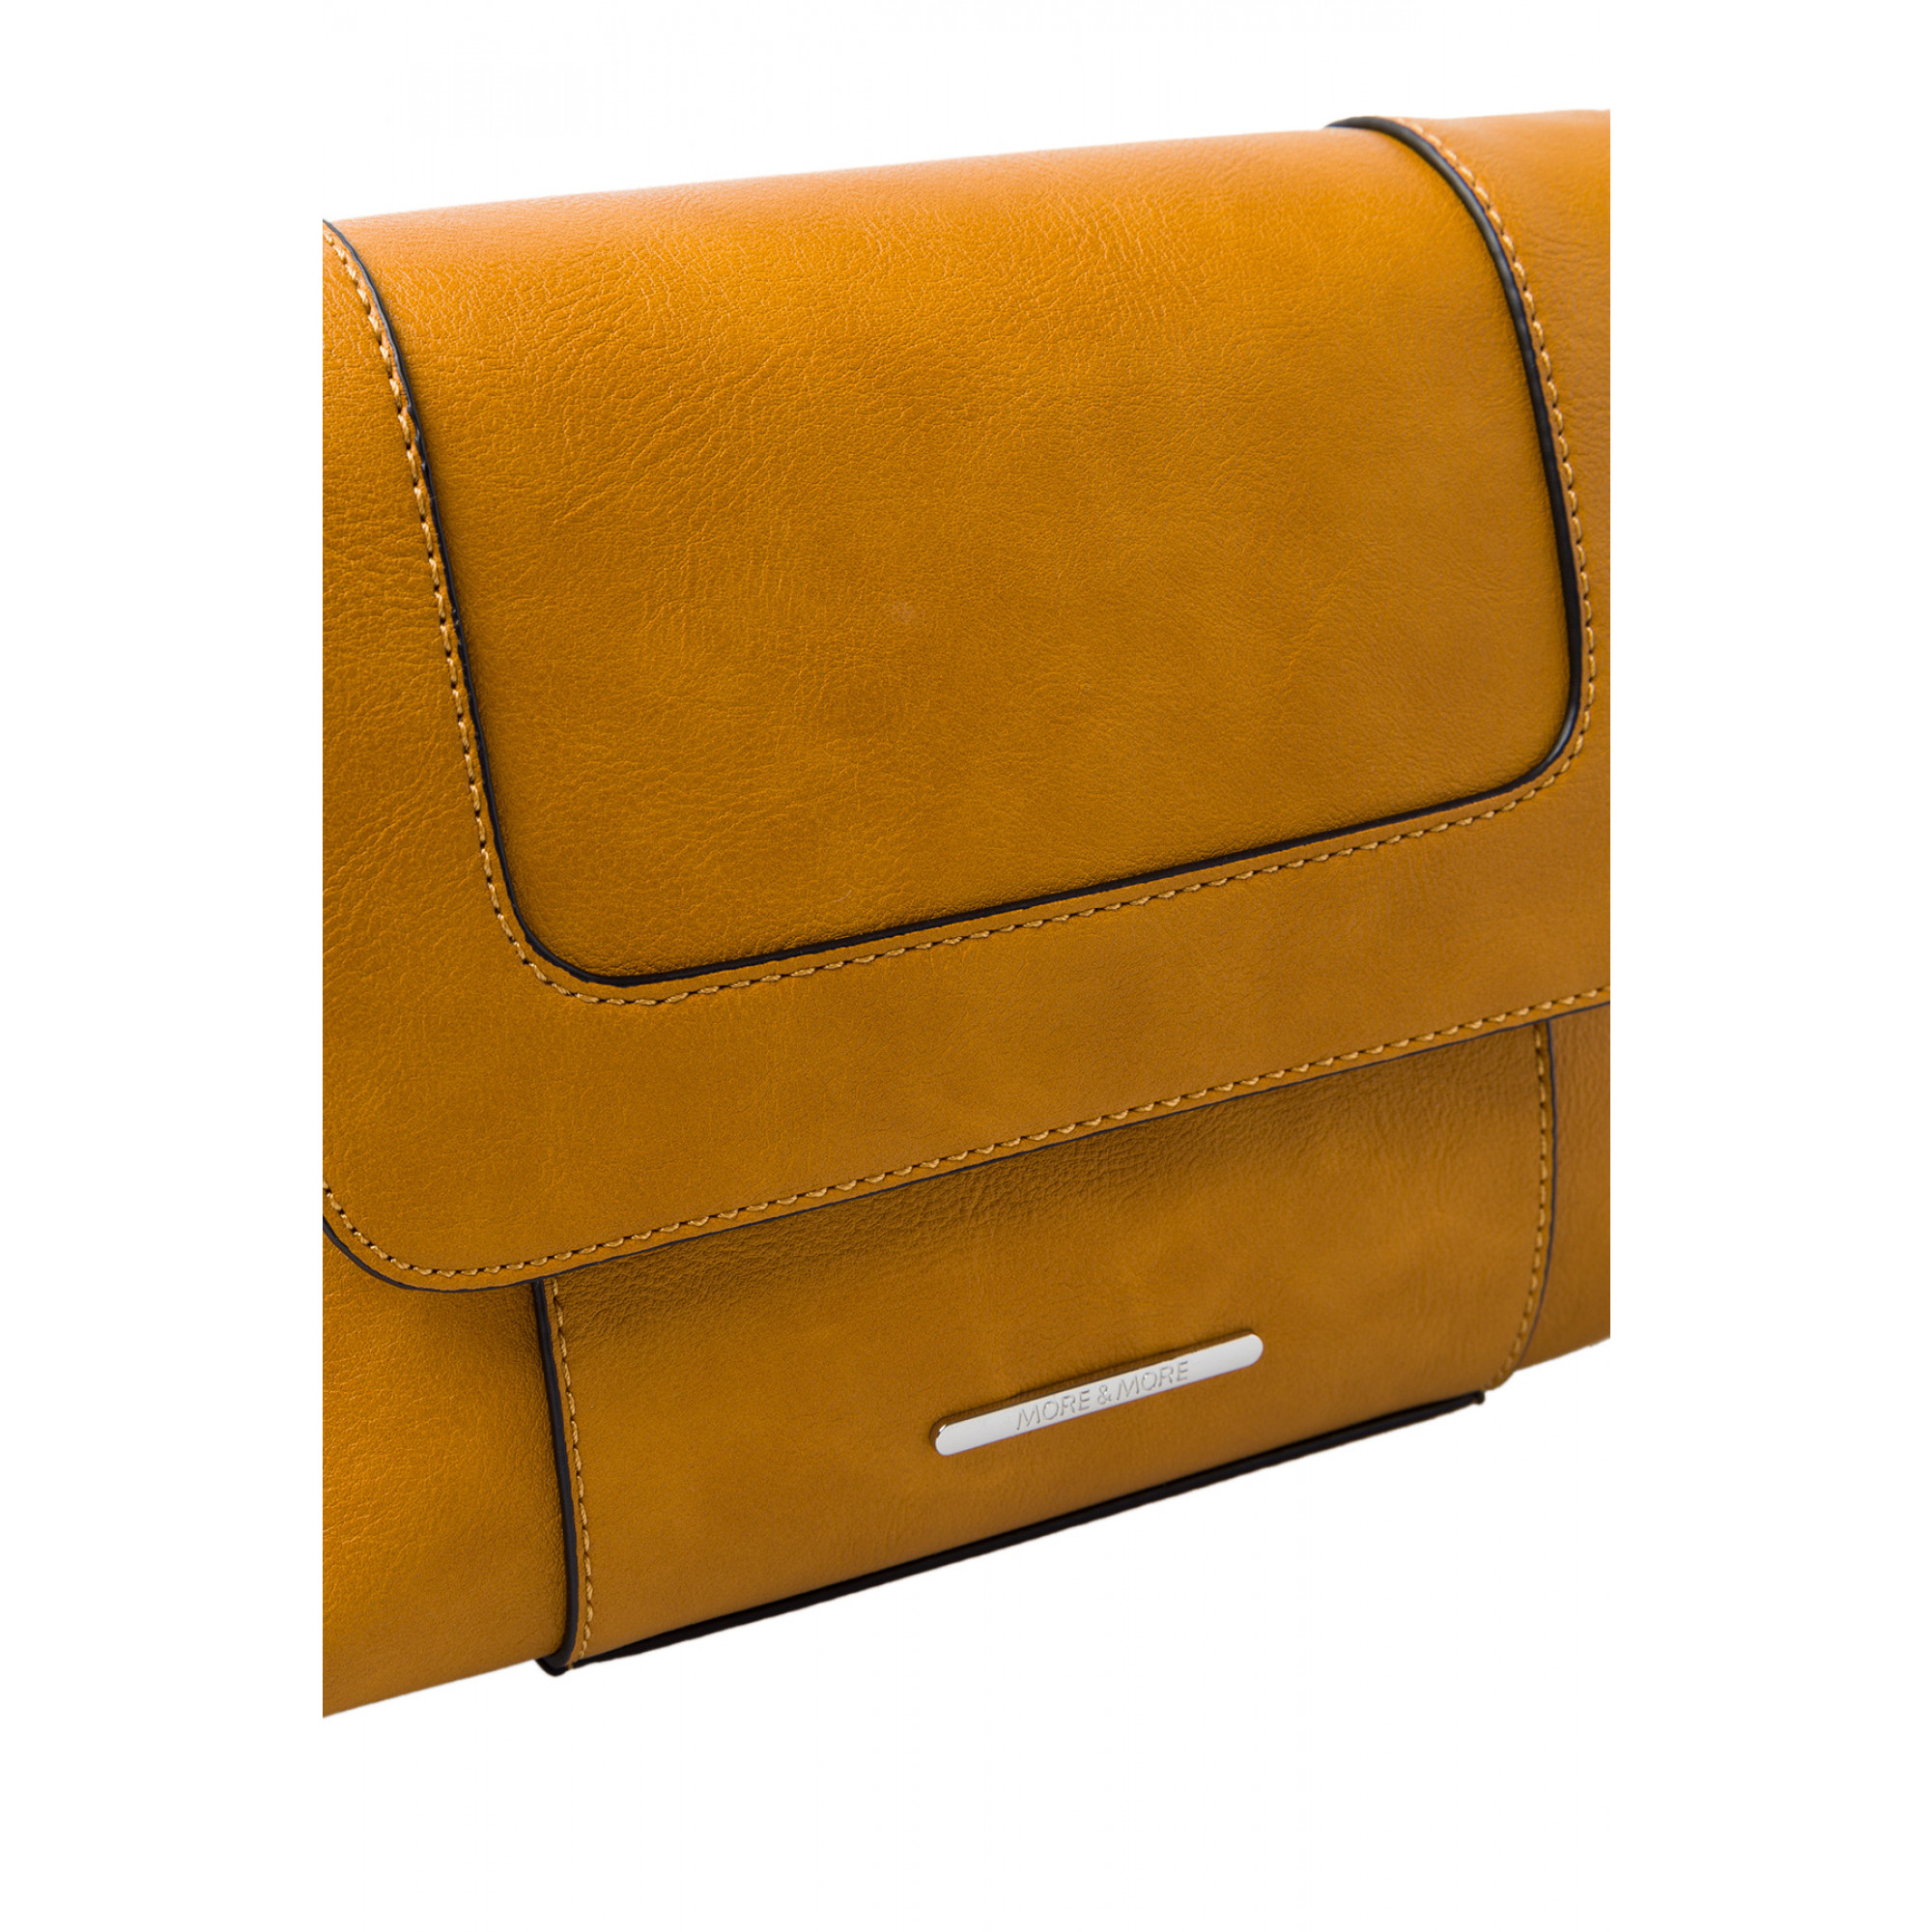 Handtasche, autumn yellow 91099100-0185 3